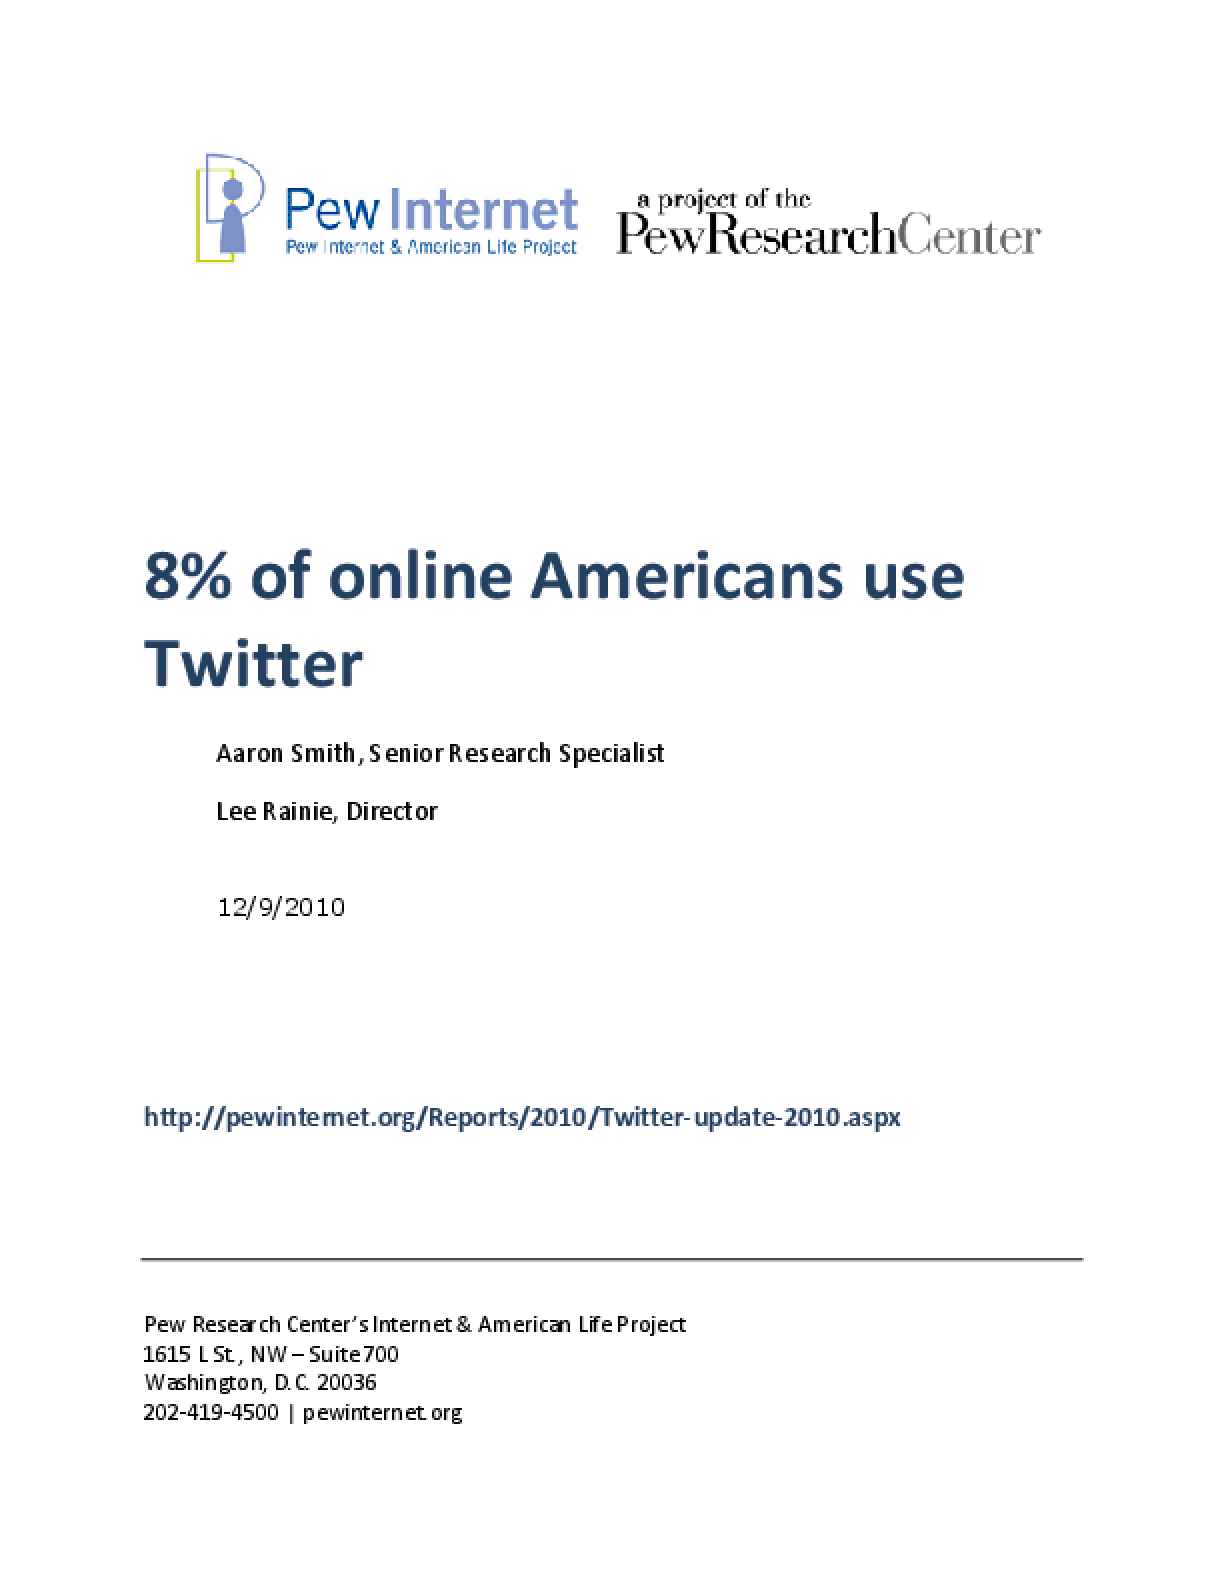 8% of Online Americans Use Twitter